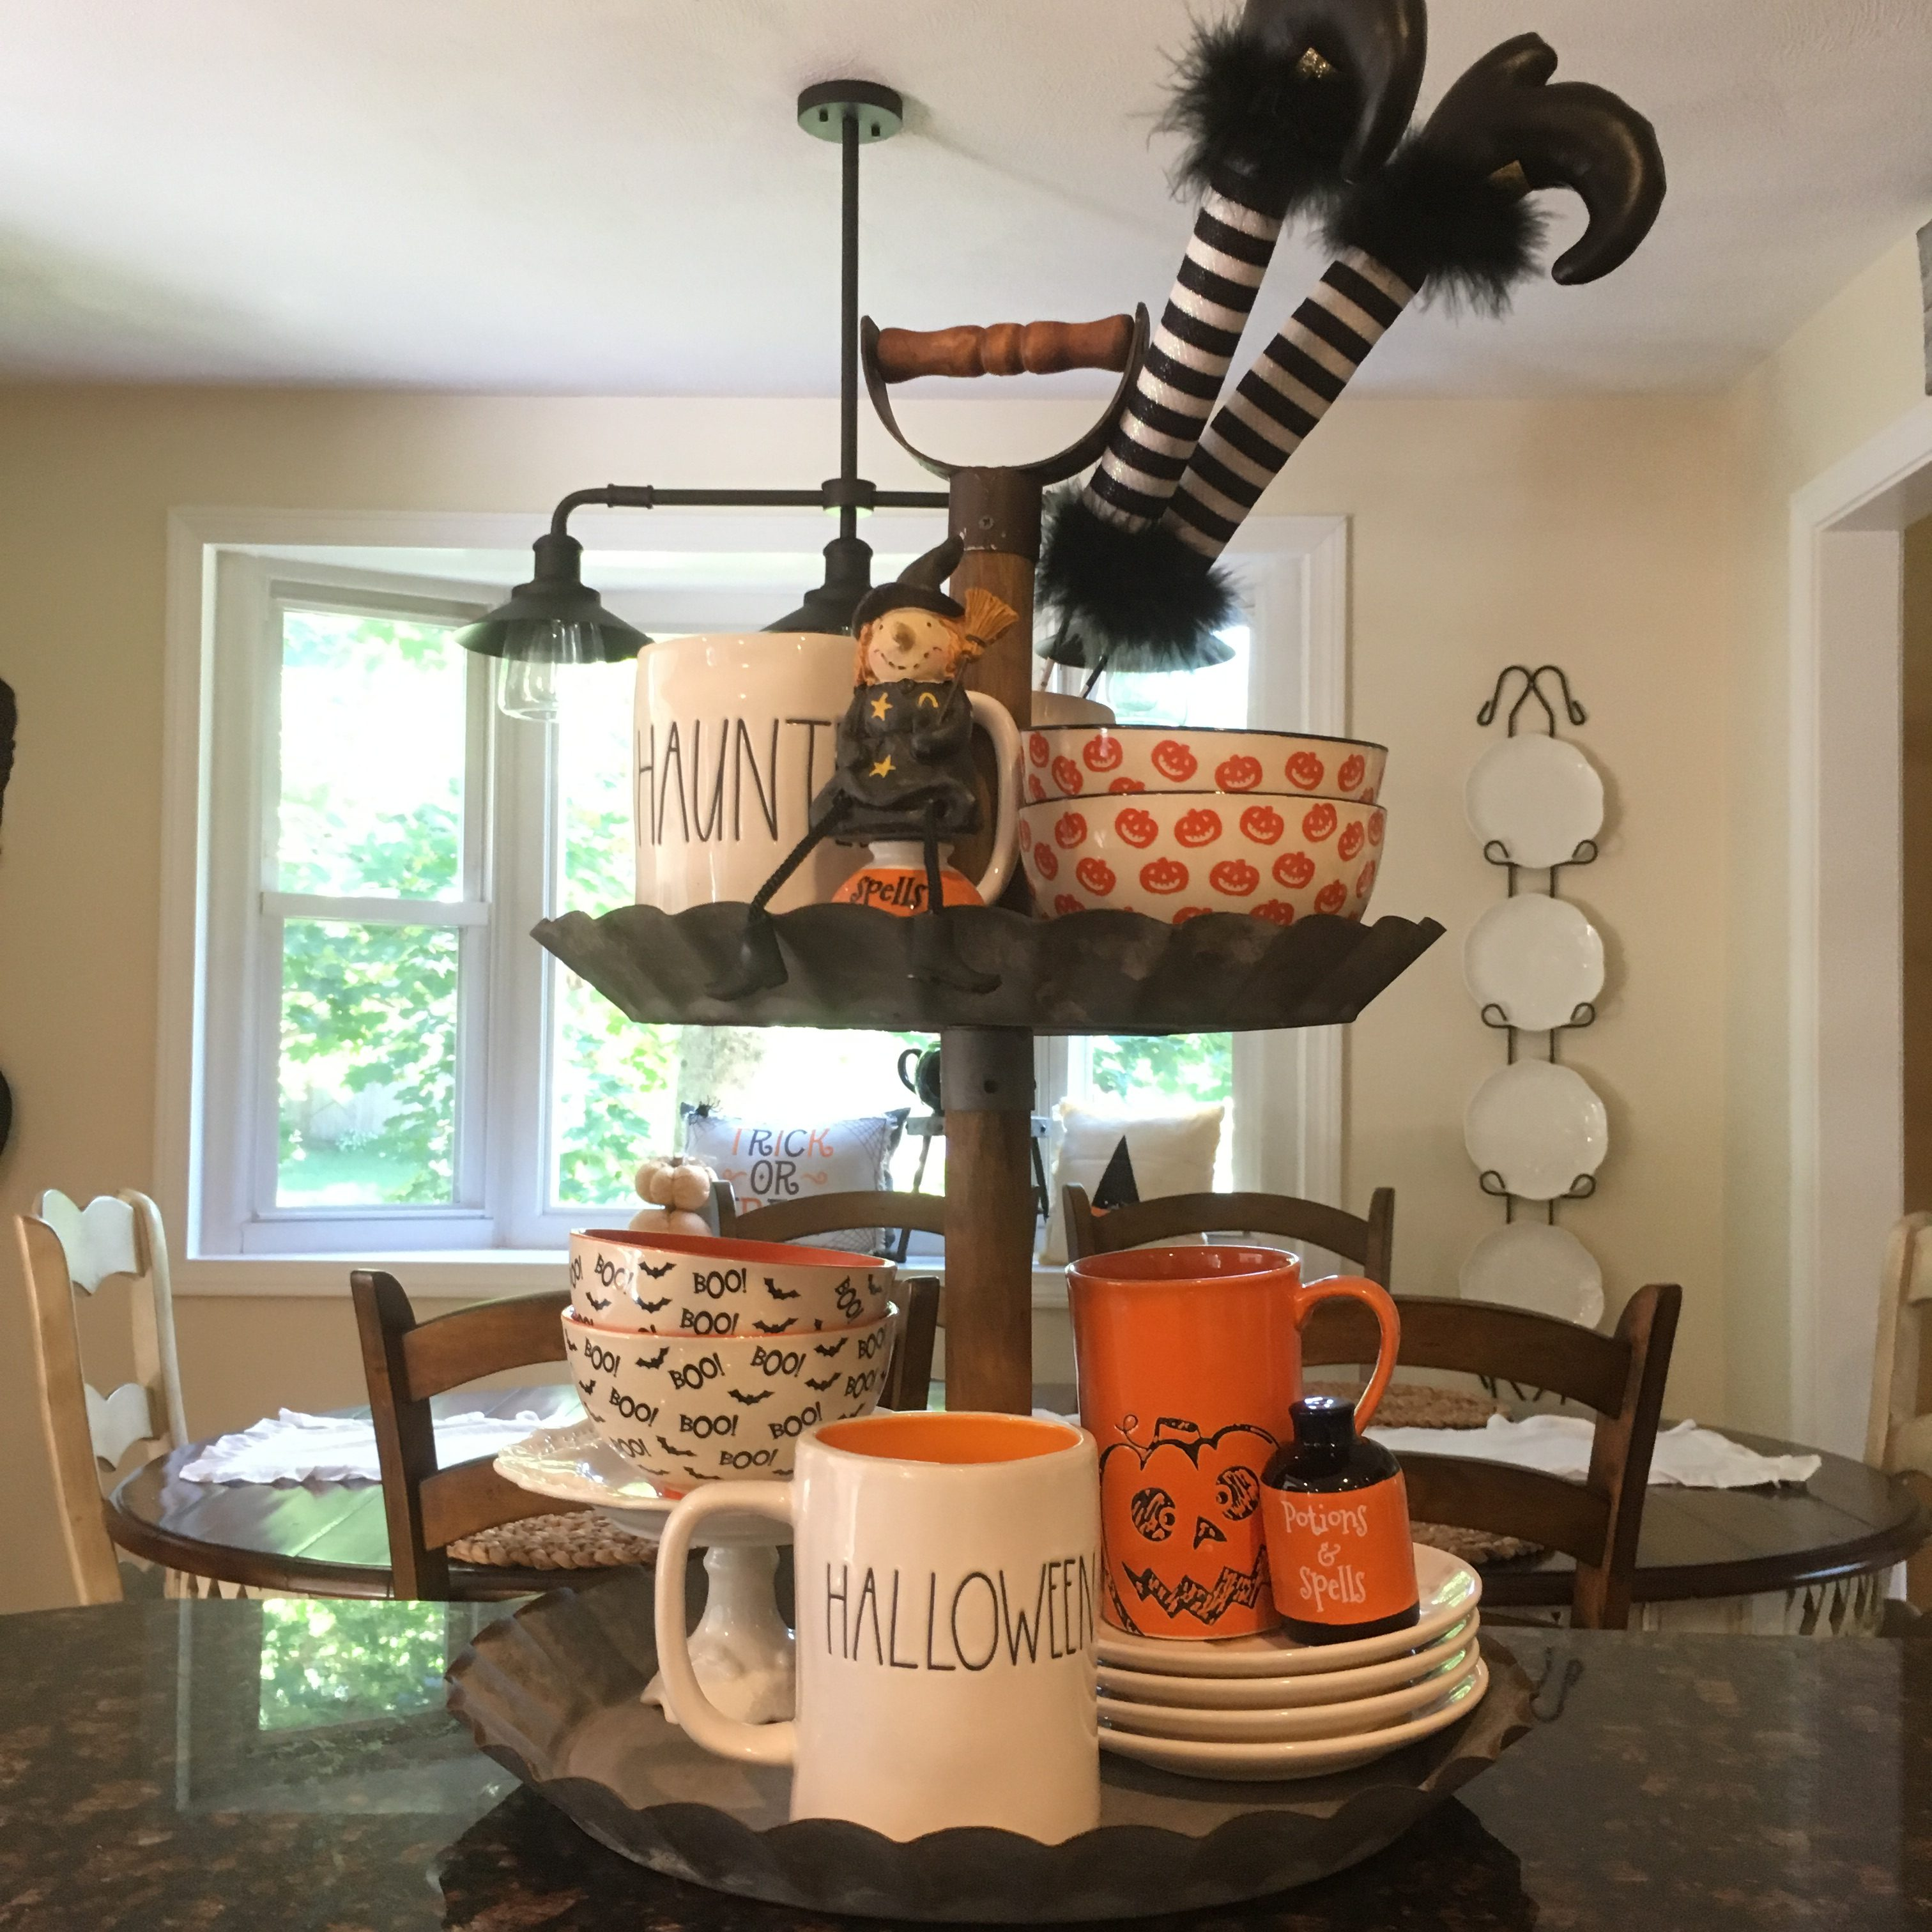 Adventures In Decorating Our 2015 Fall Kitchen: My Rae Dunn Halloween & Fall Decor Adventure